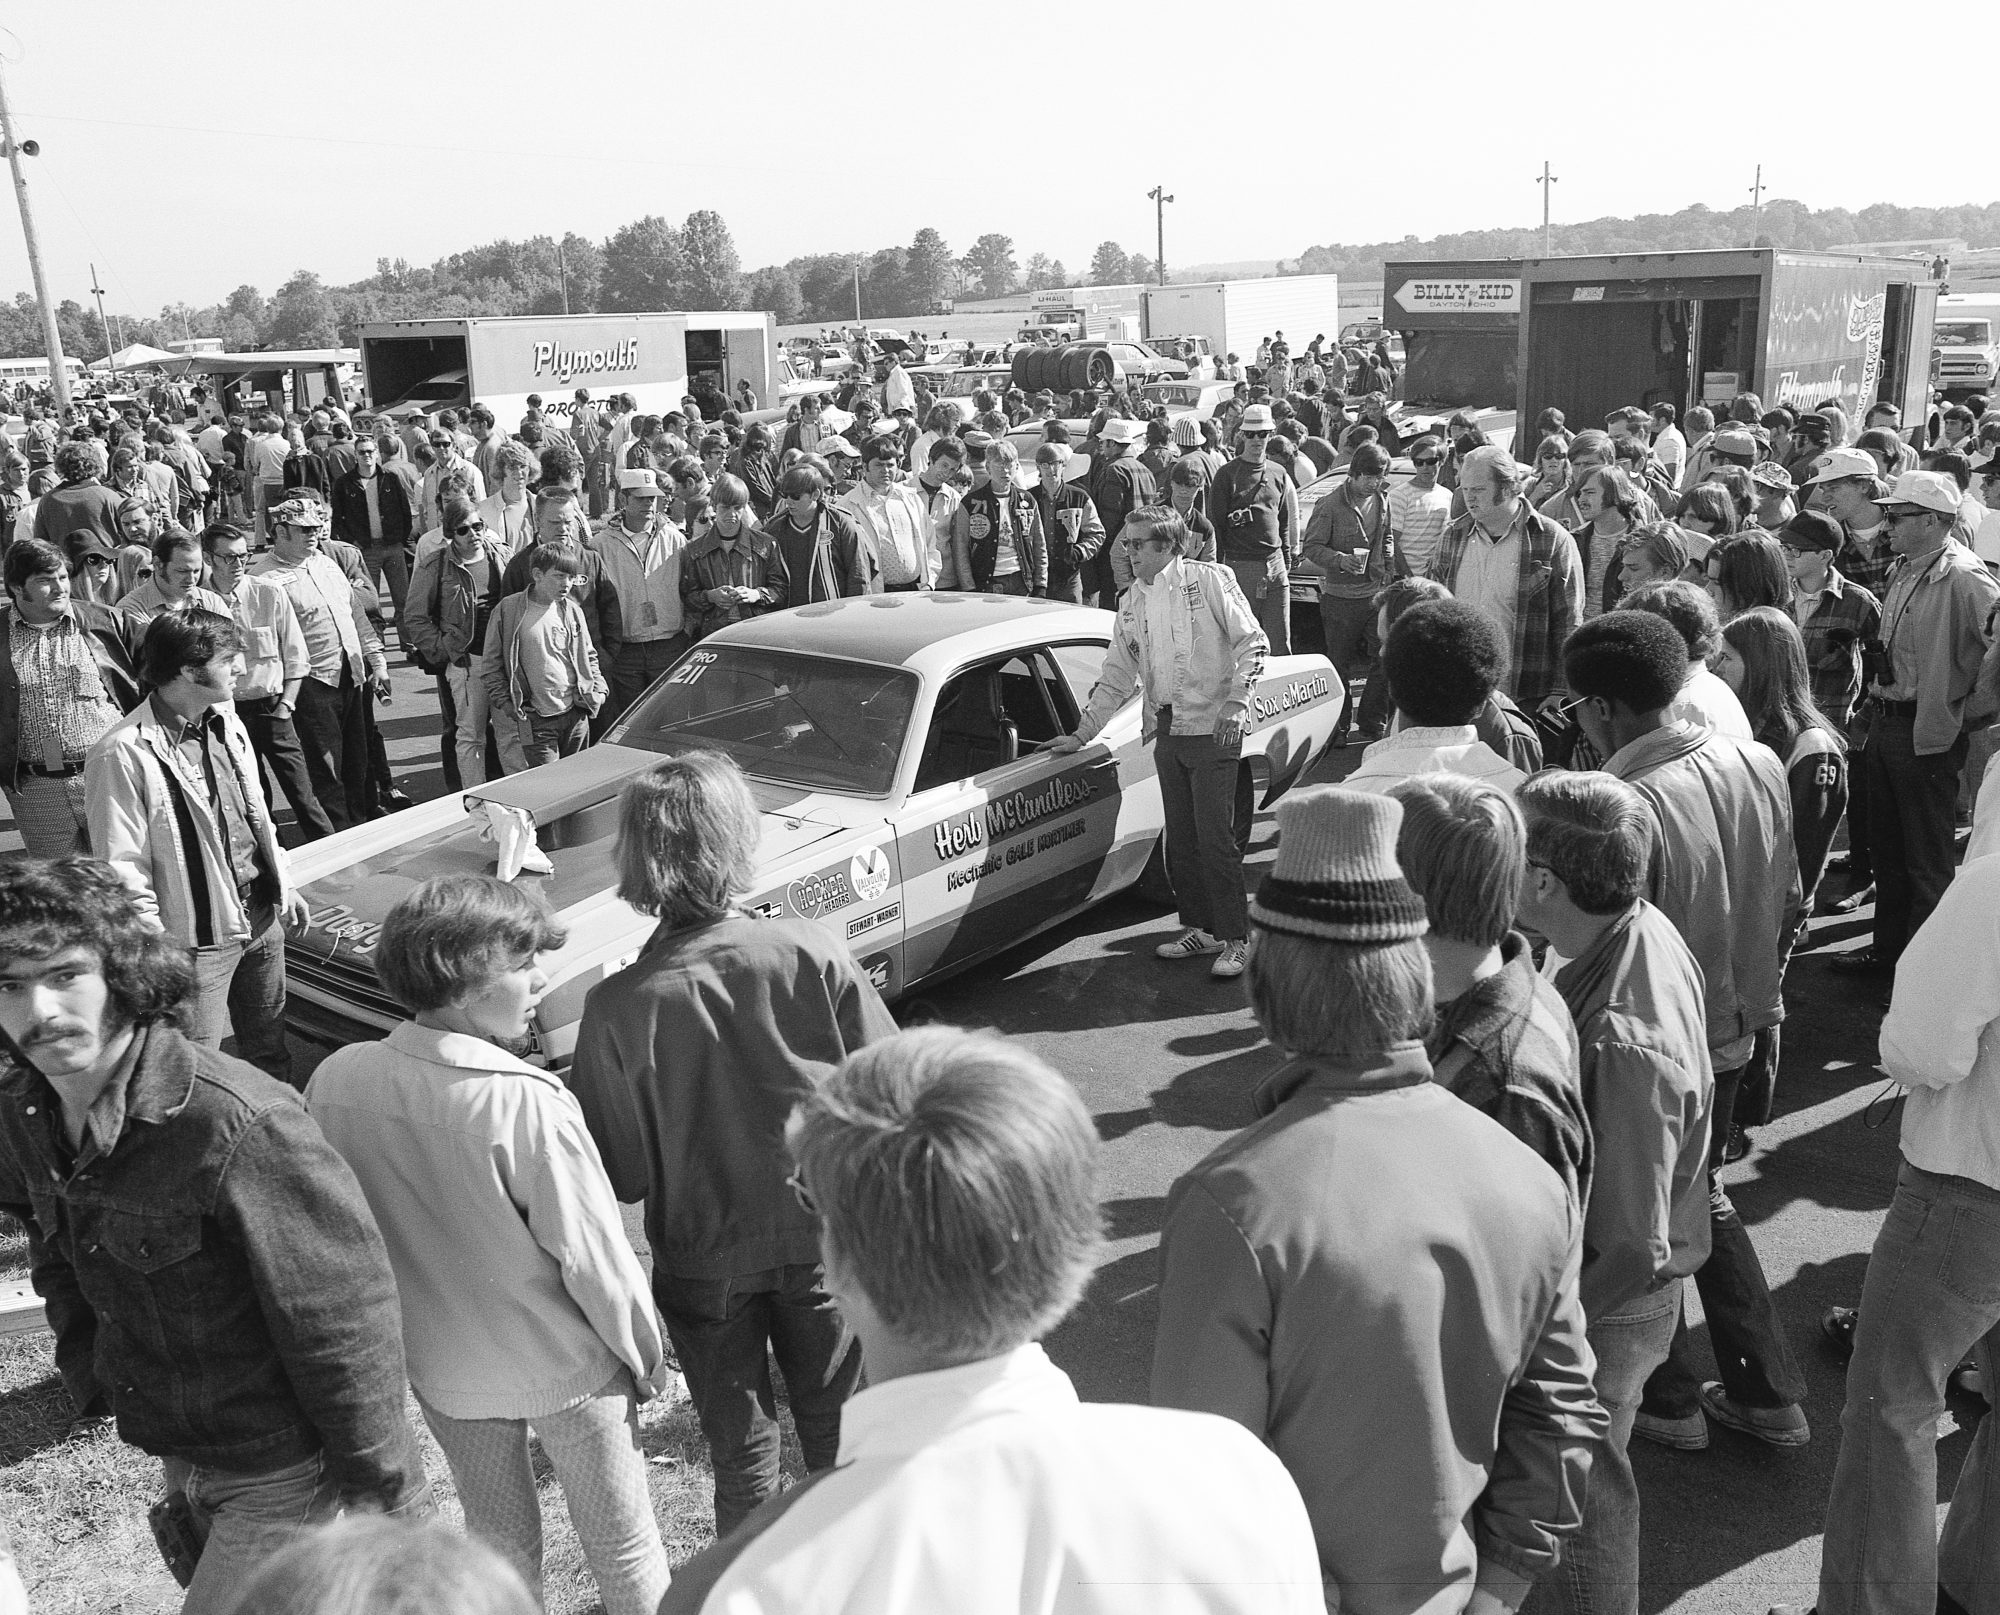 Herb McCandless speaking to a crowd